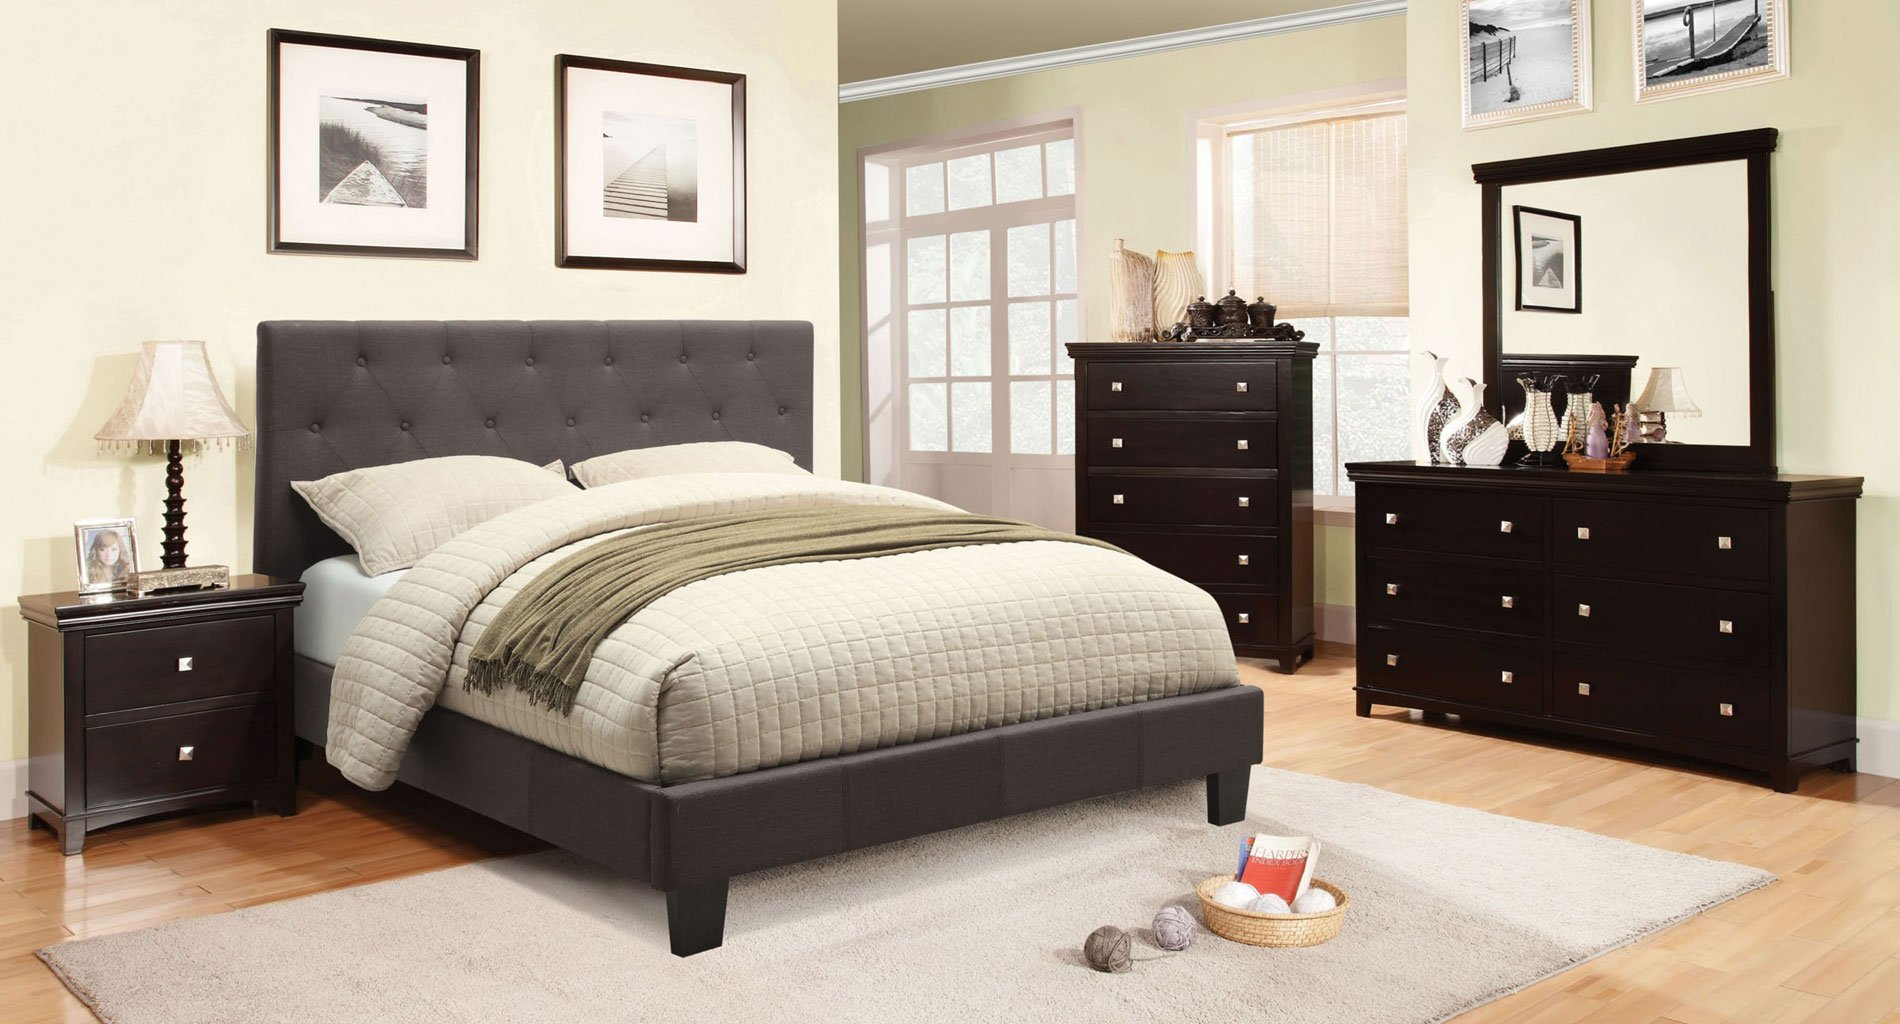 Spruce Bedroom Set W/ Gray Leeroy Bed By Furniture Of